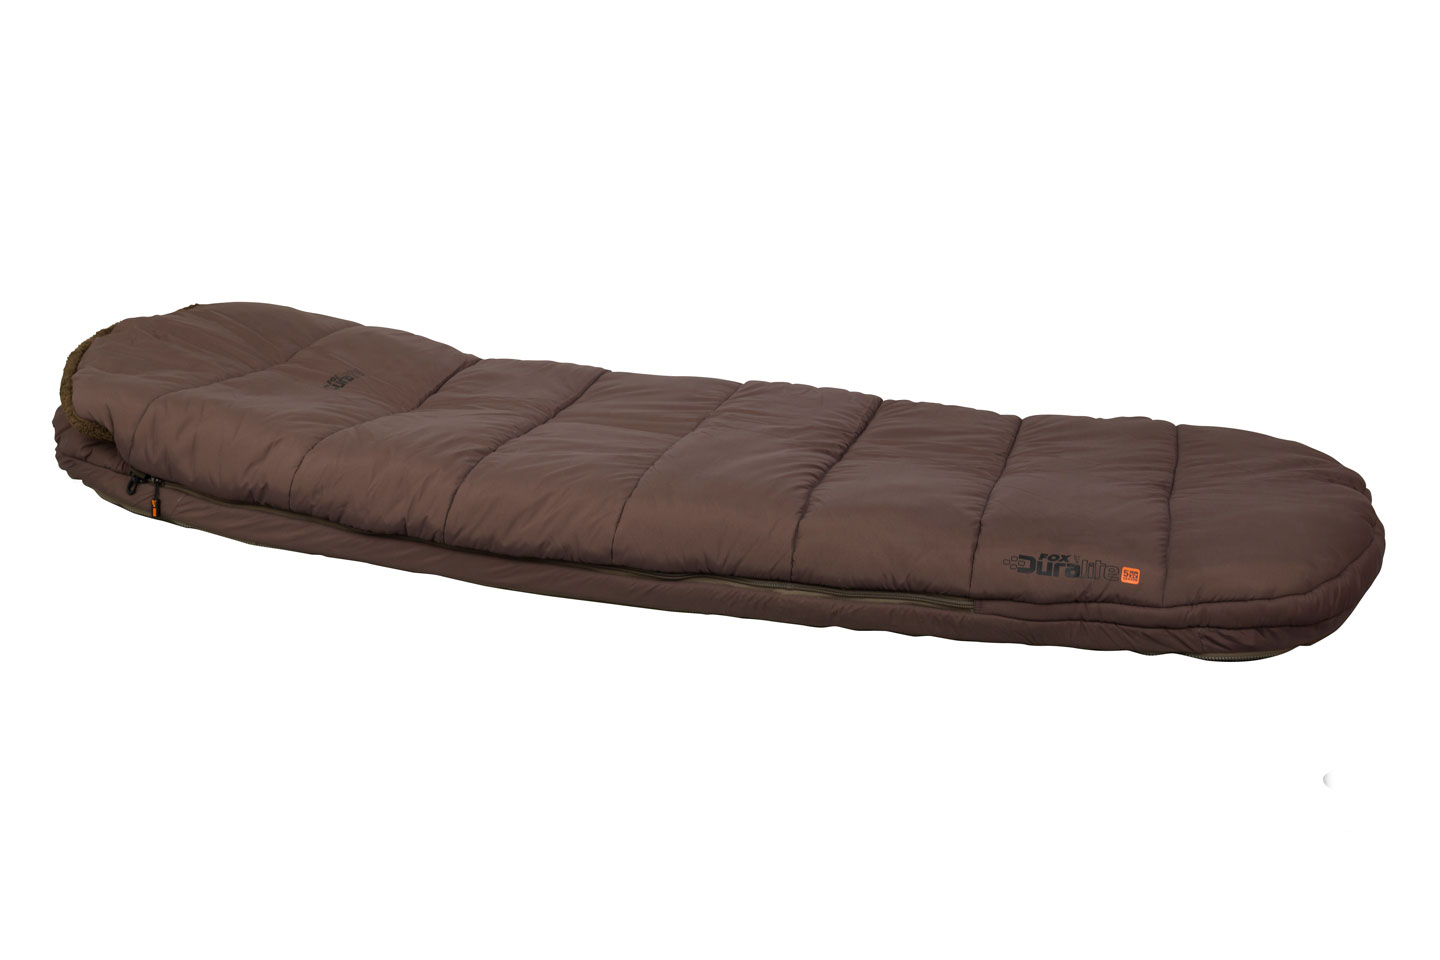 duralite-bed_5-season-bag_maingif-1